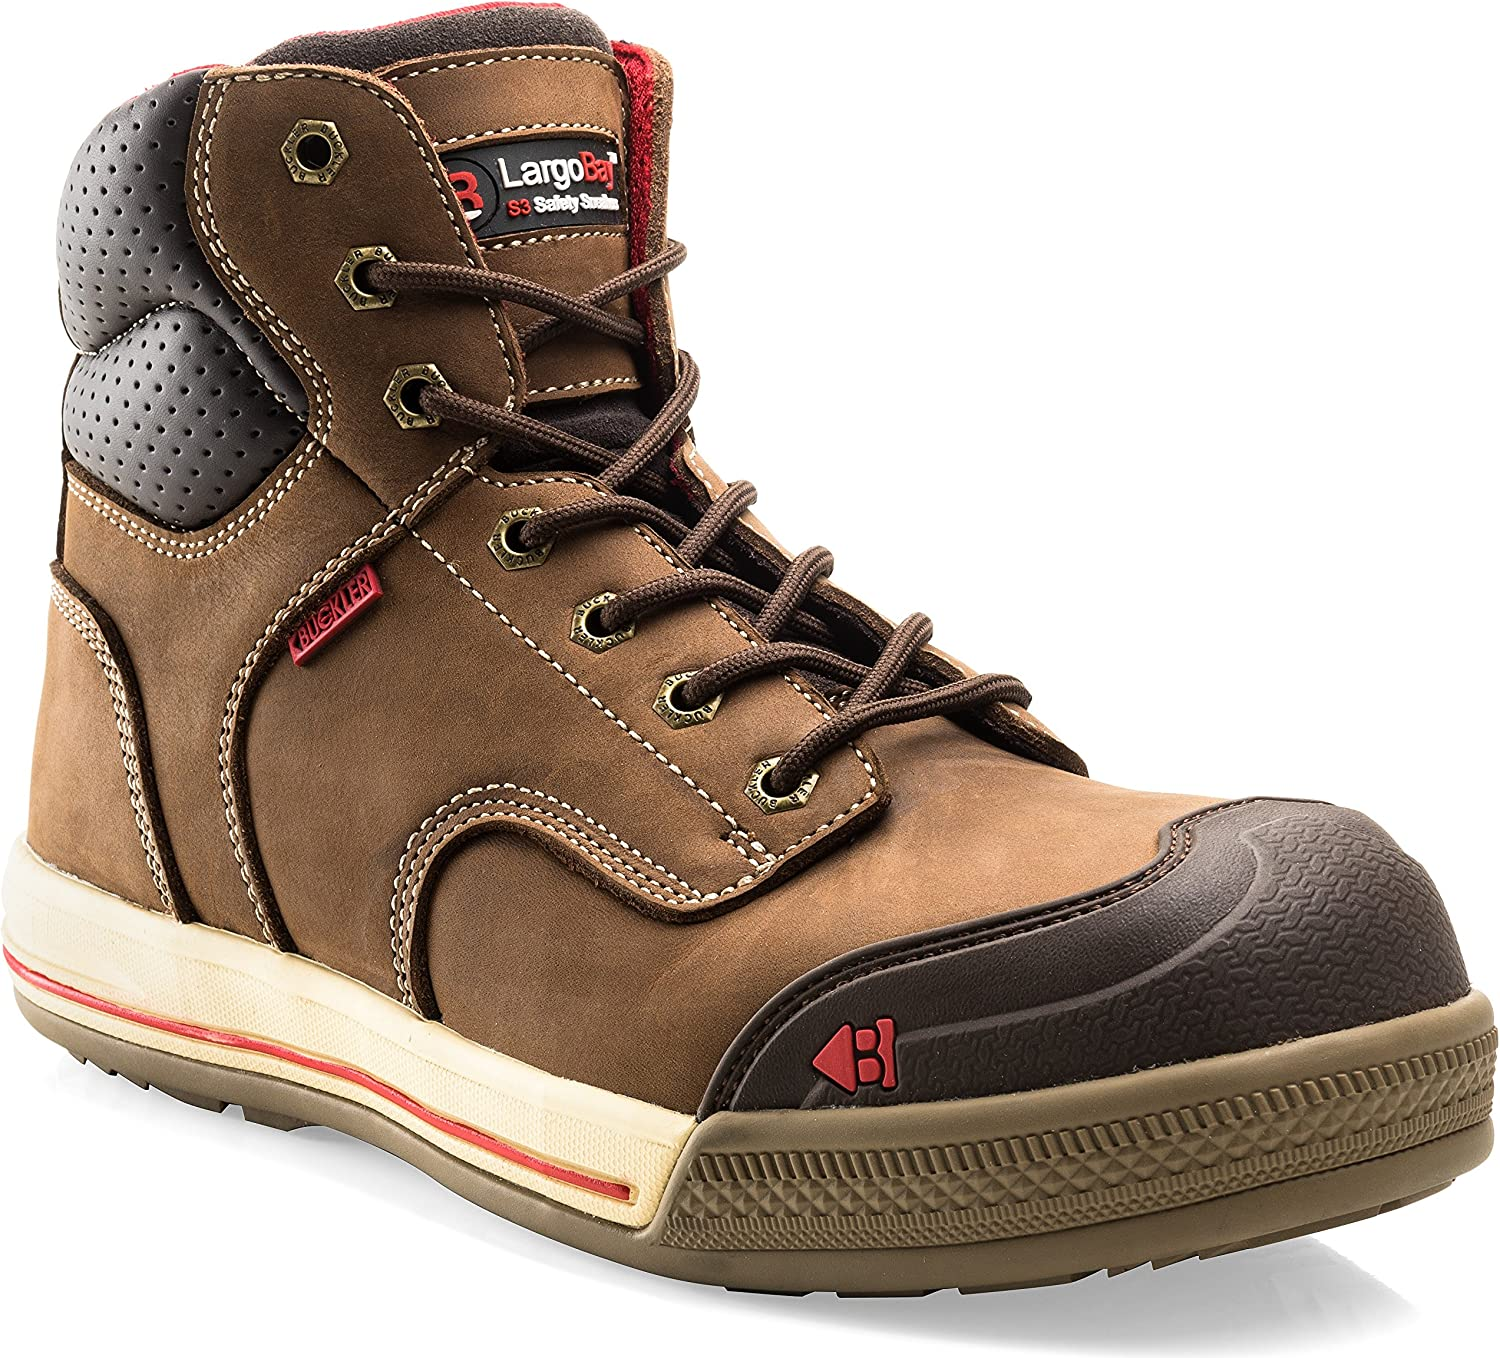 Buckler Largo Bay Brown Safety Lace Sneaker Boot